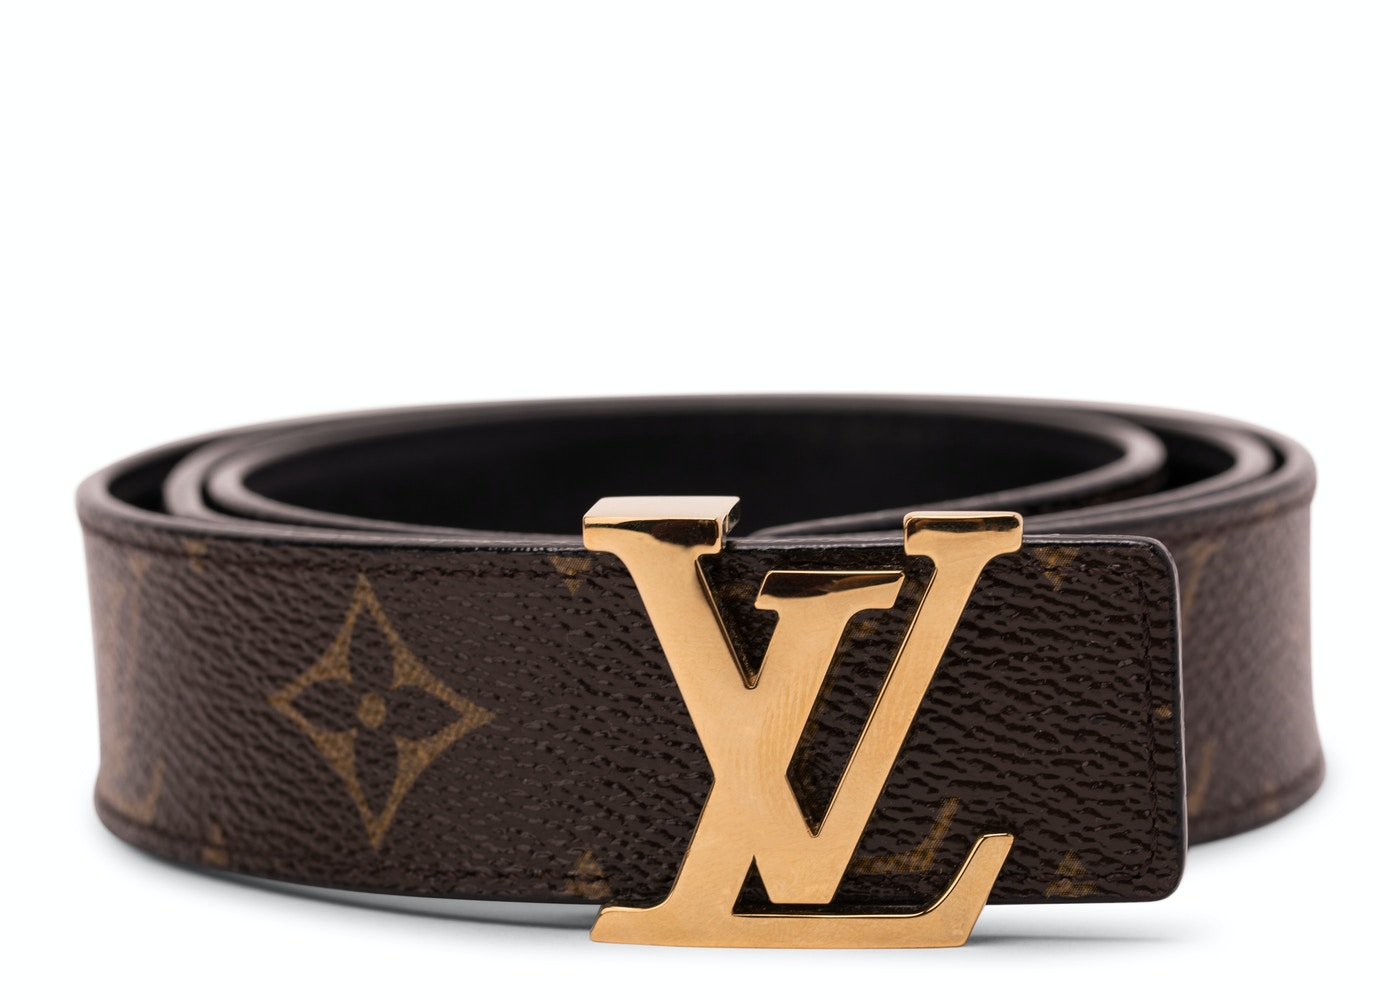 3ba22abddd6c Louis Vuitton Belt Initiales Reversible Monogram Noir Black Brown.  Reversible Monogram Noir Black Brown